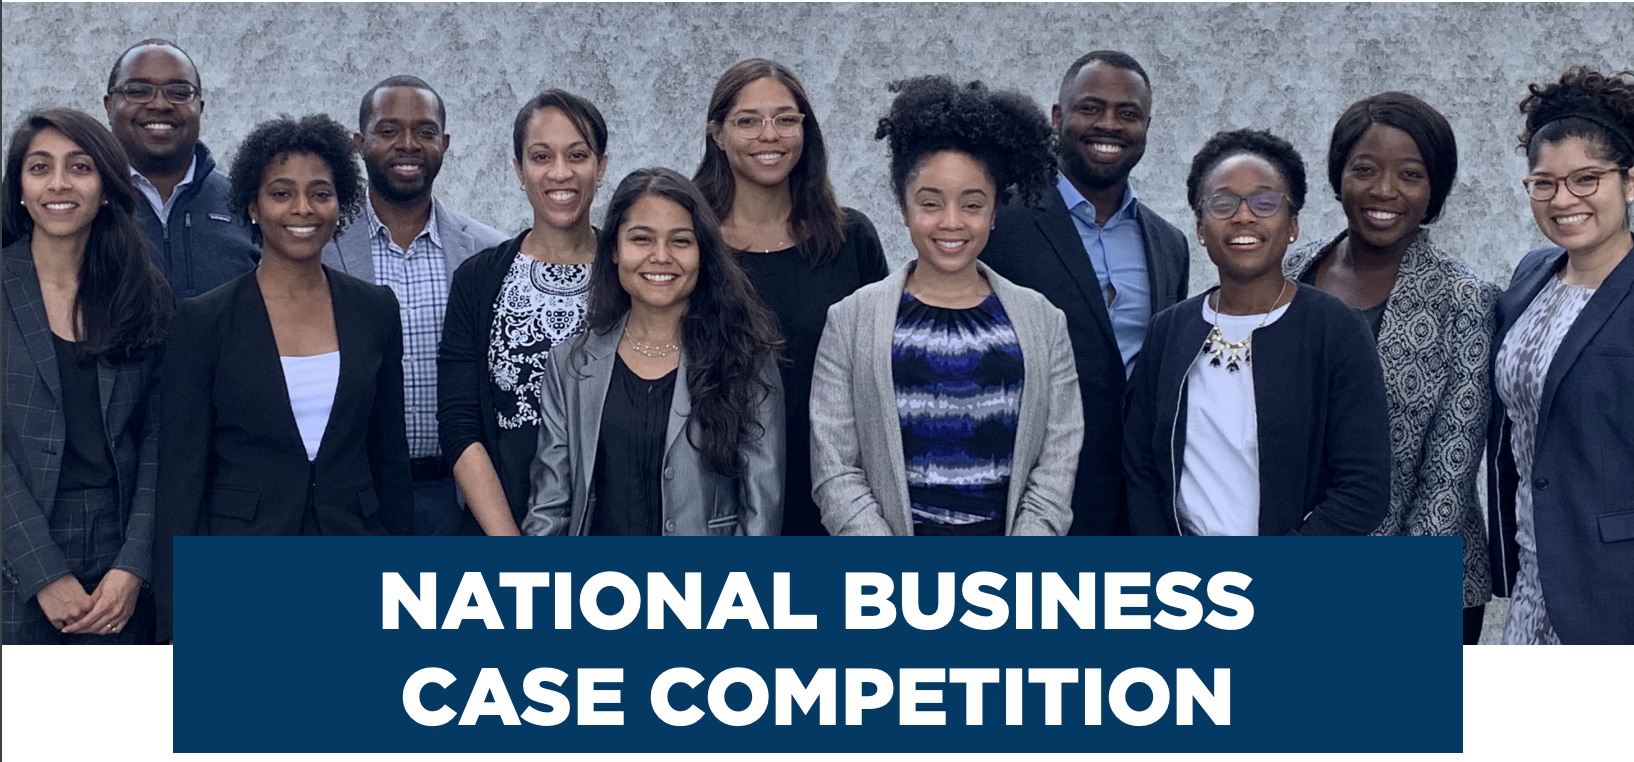 National Business Case Competition